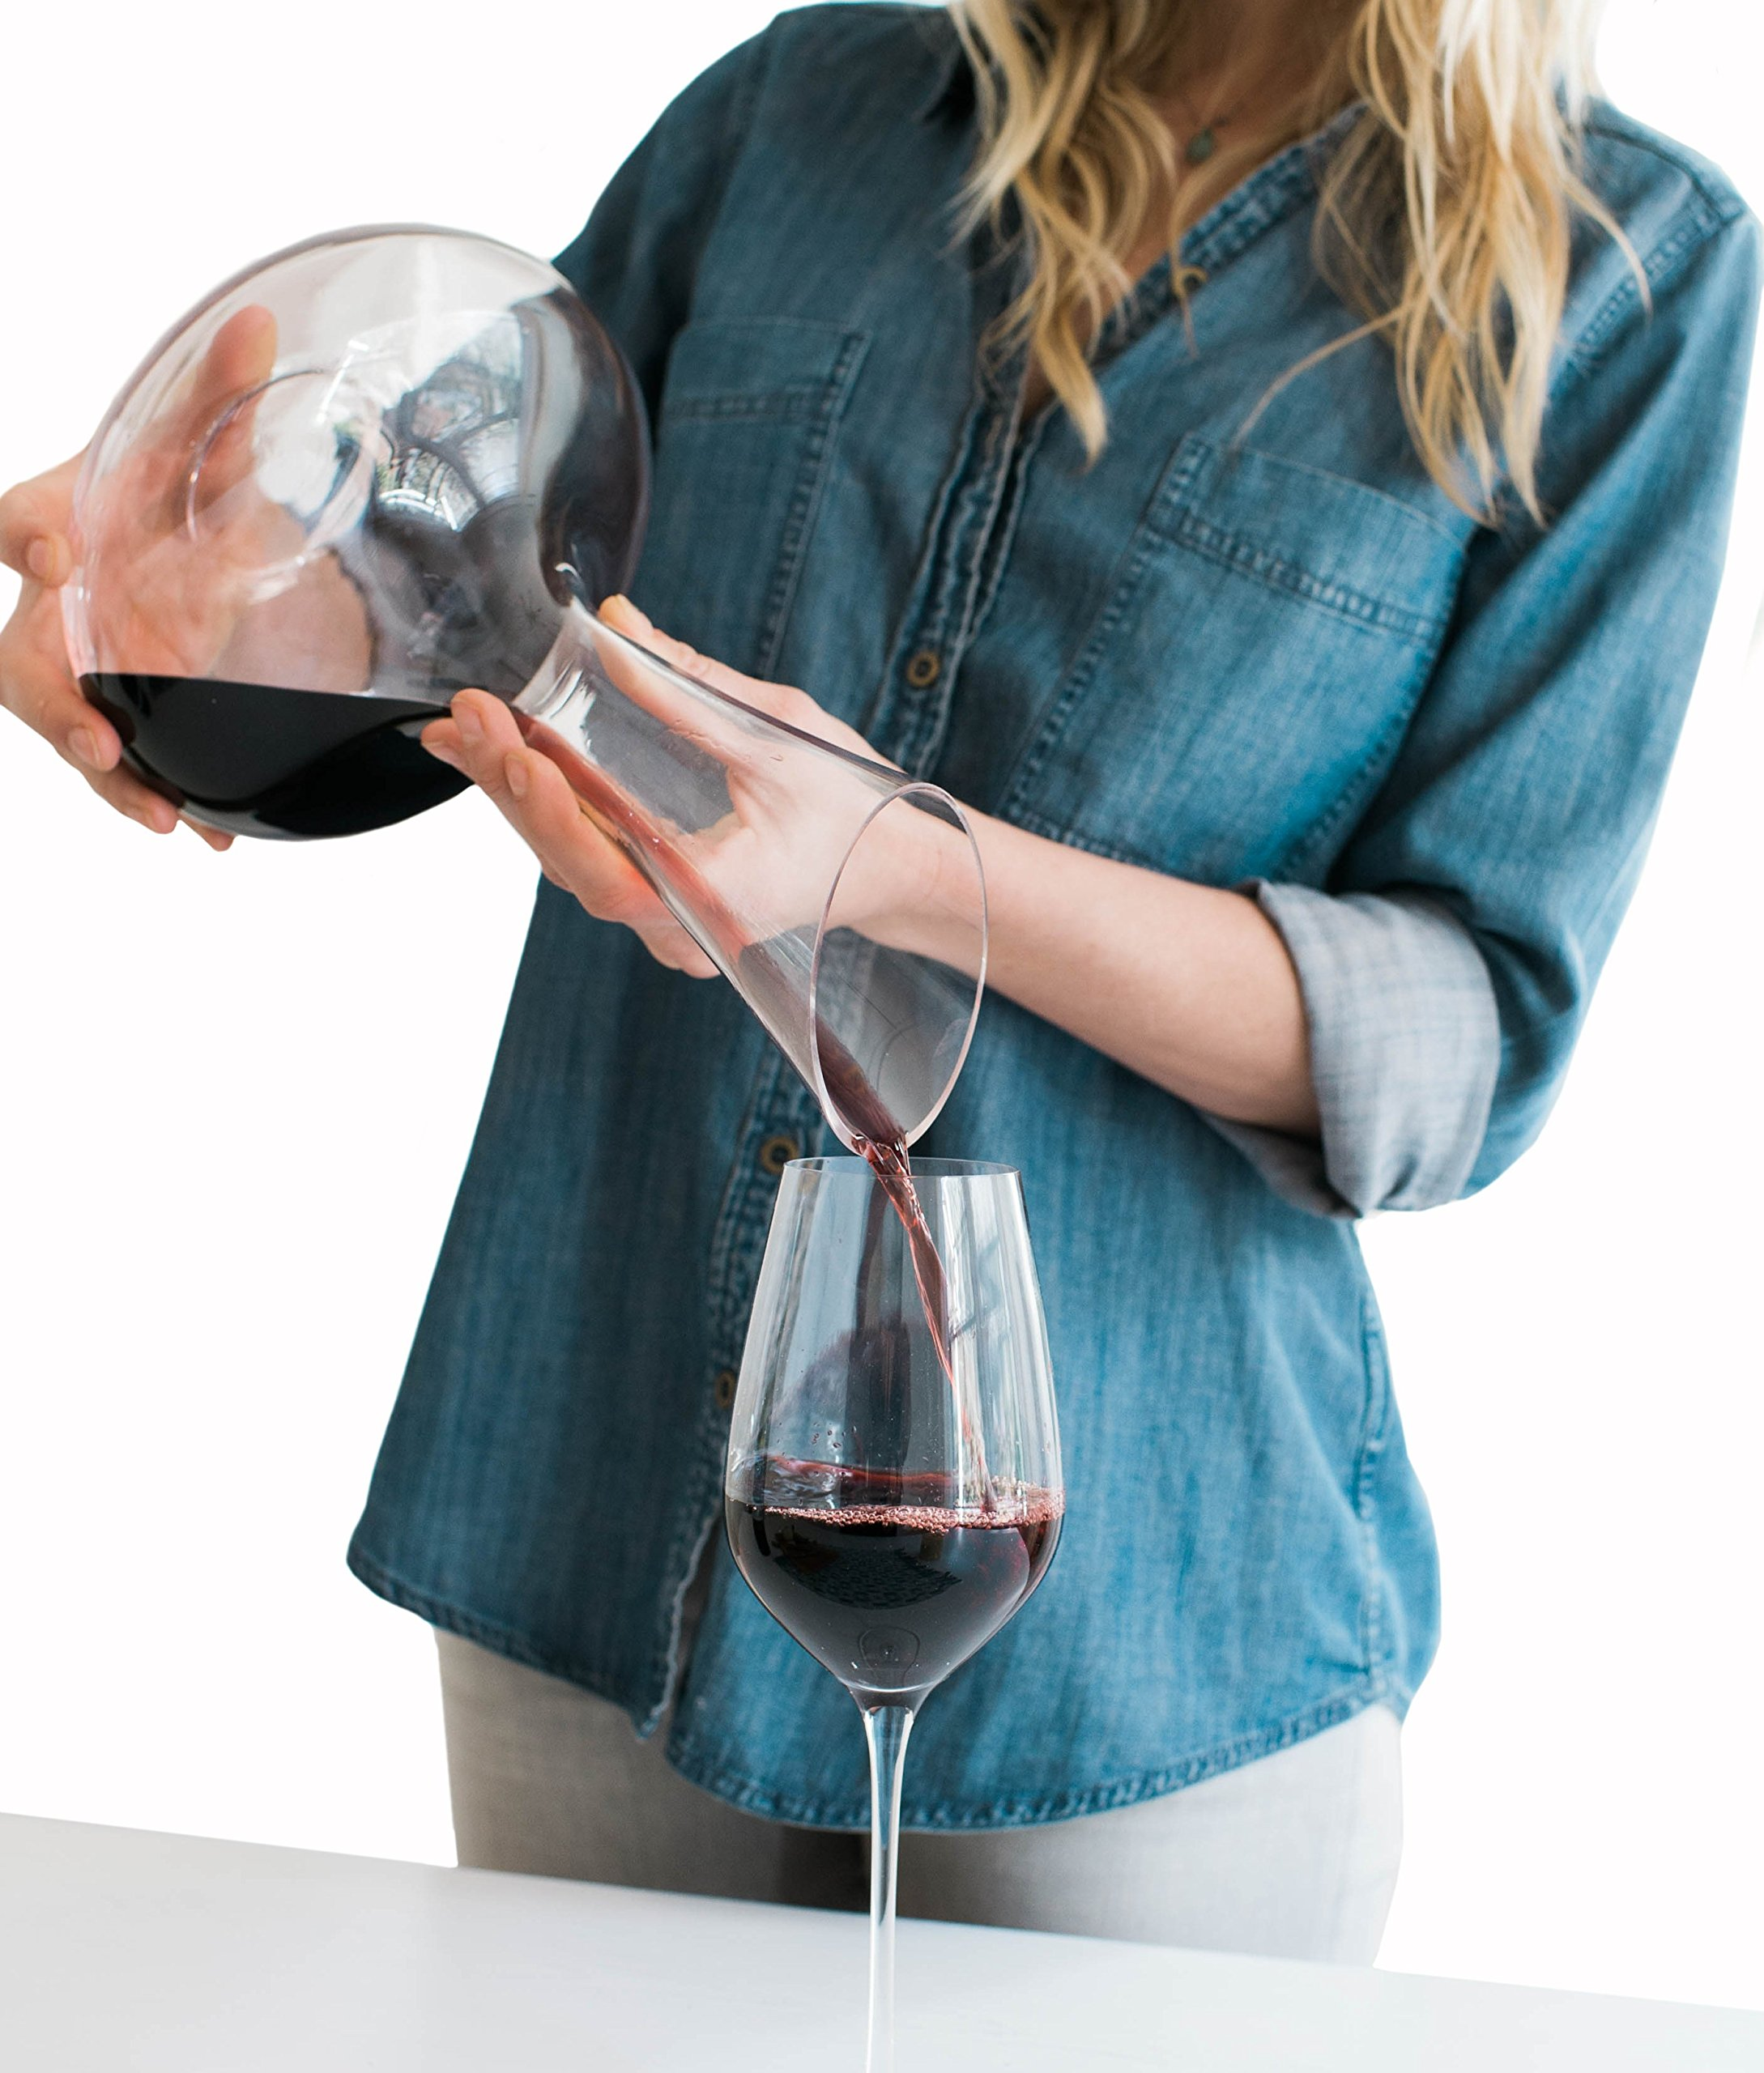 Wine Decanter by Aria - All Hand Blown Lead Free Crystal Glass with a Perfect Pour Spout by Aria (Image #2)